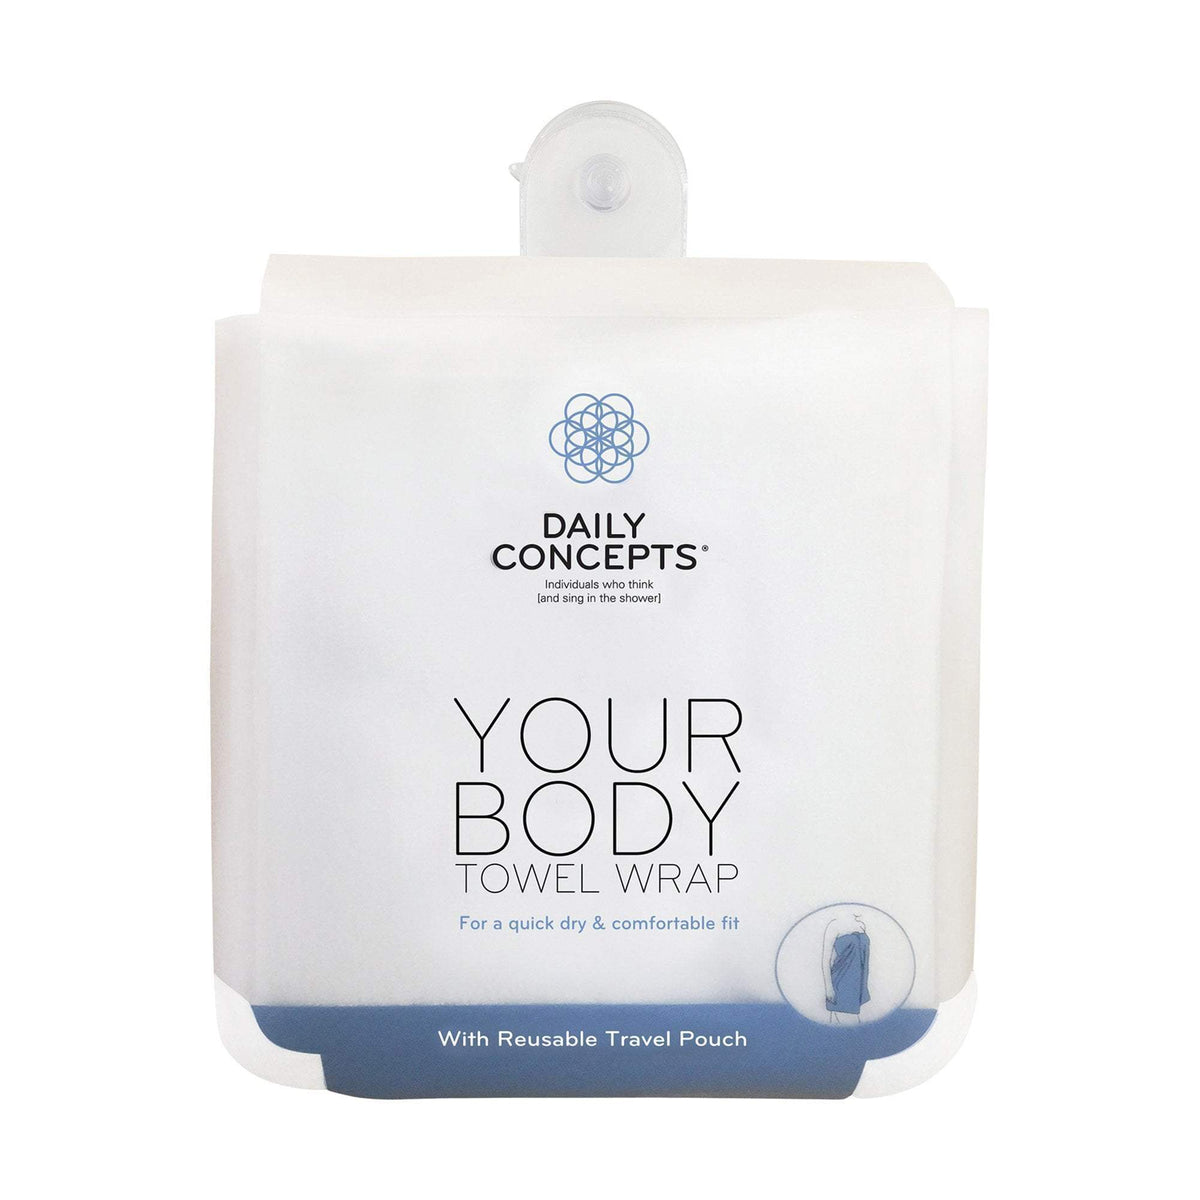 Daily Concepts Daily Body Towel Wrap